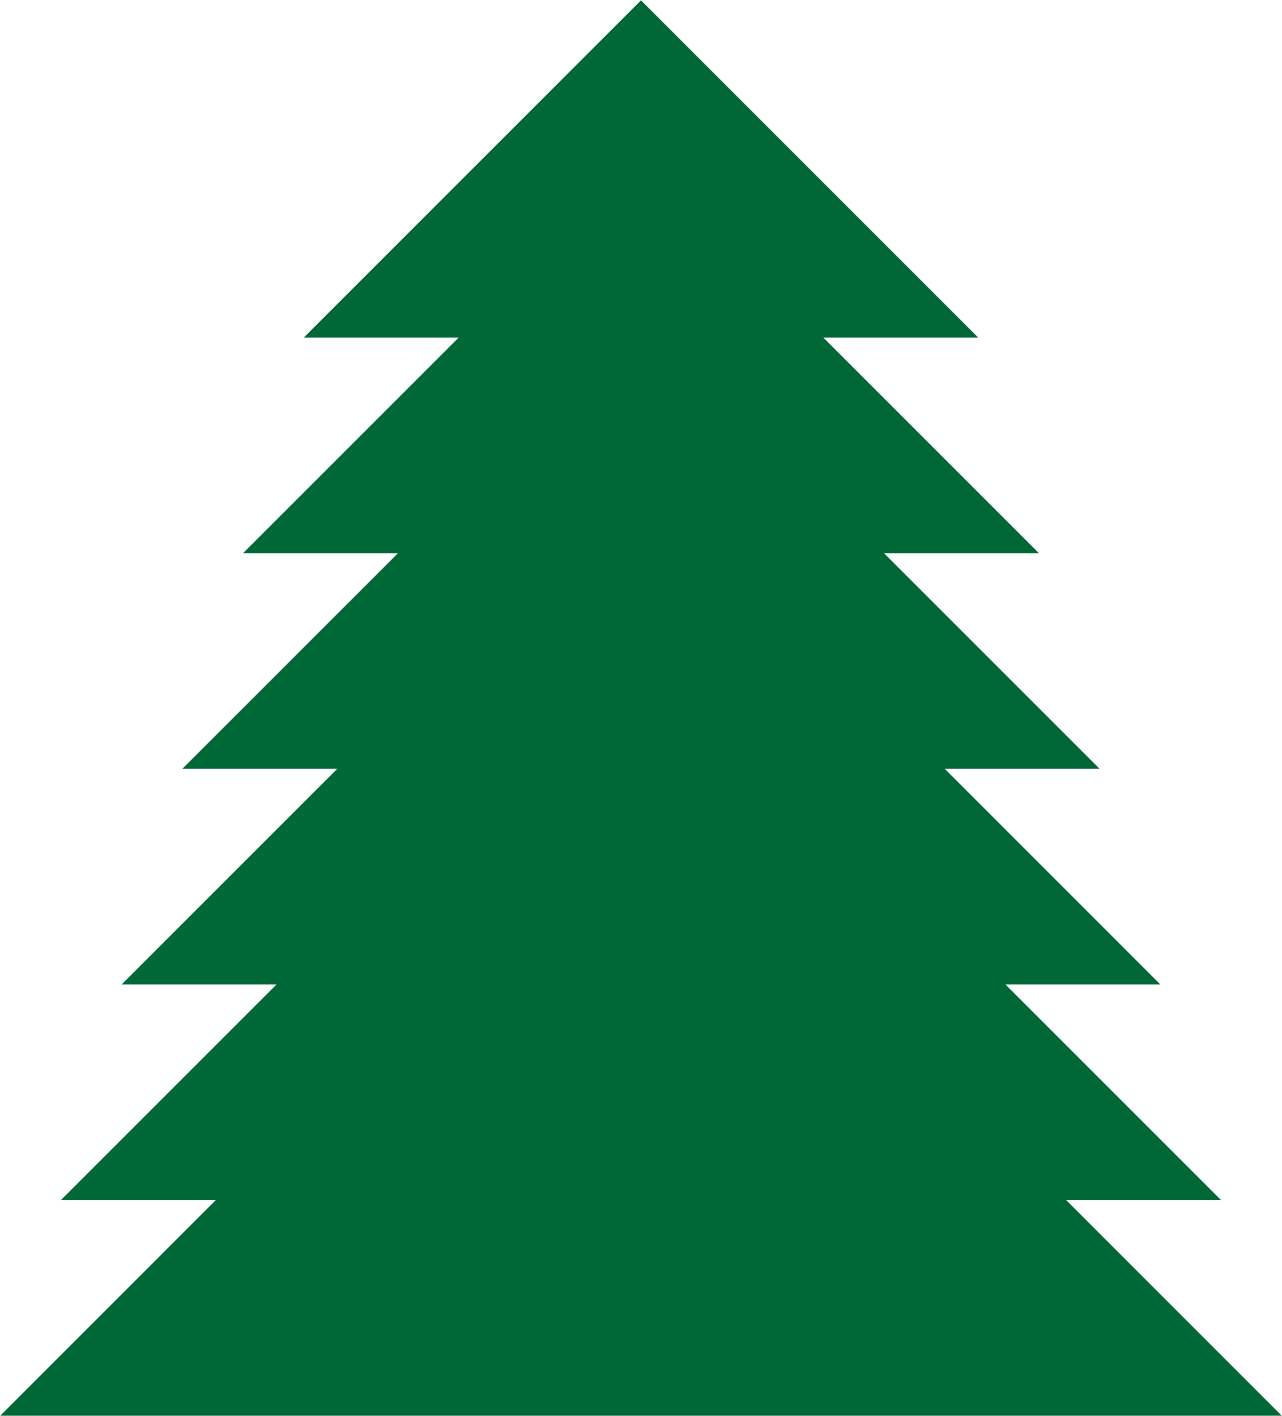 Pine clipart treee Clipartix tree Pine clipart a